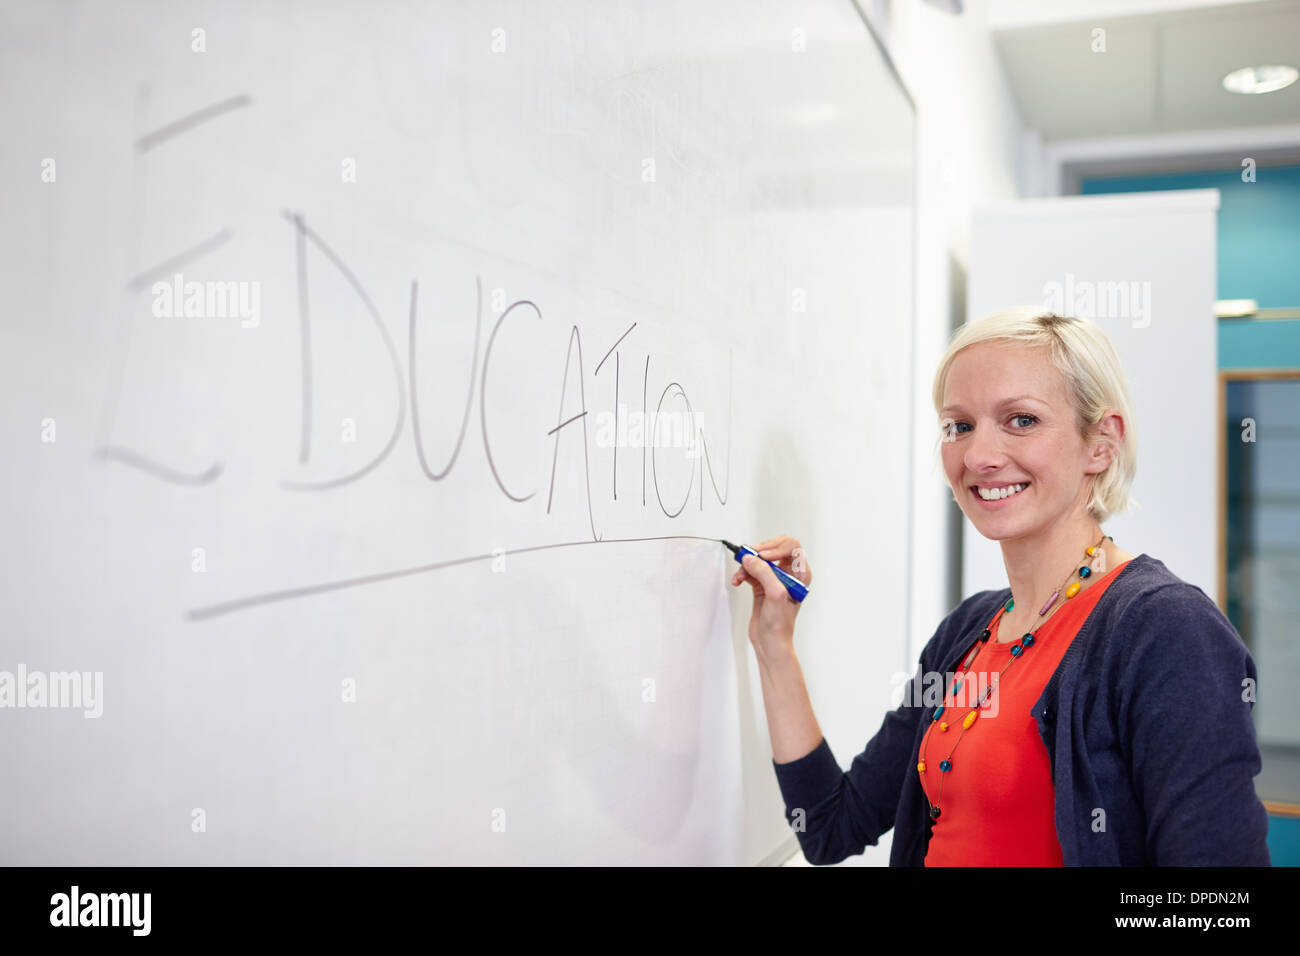 Portrait of female writing on white board - Stock Image